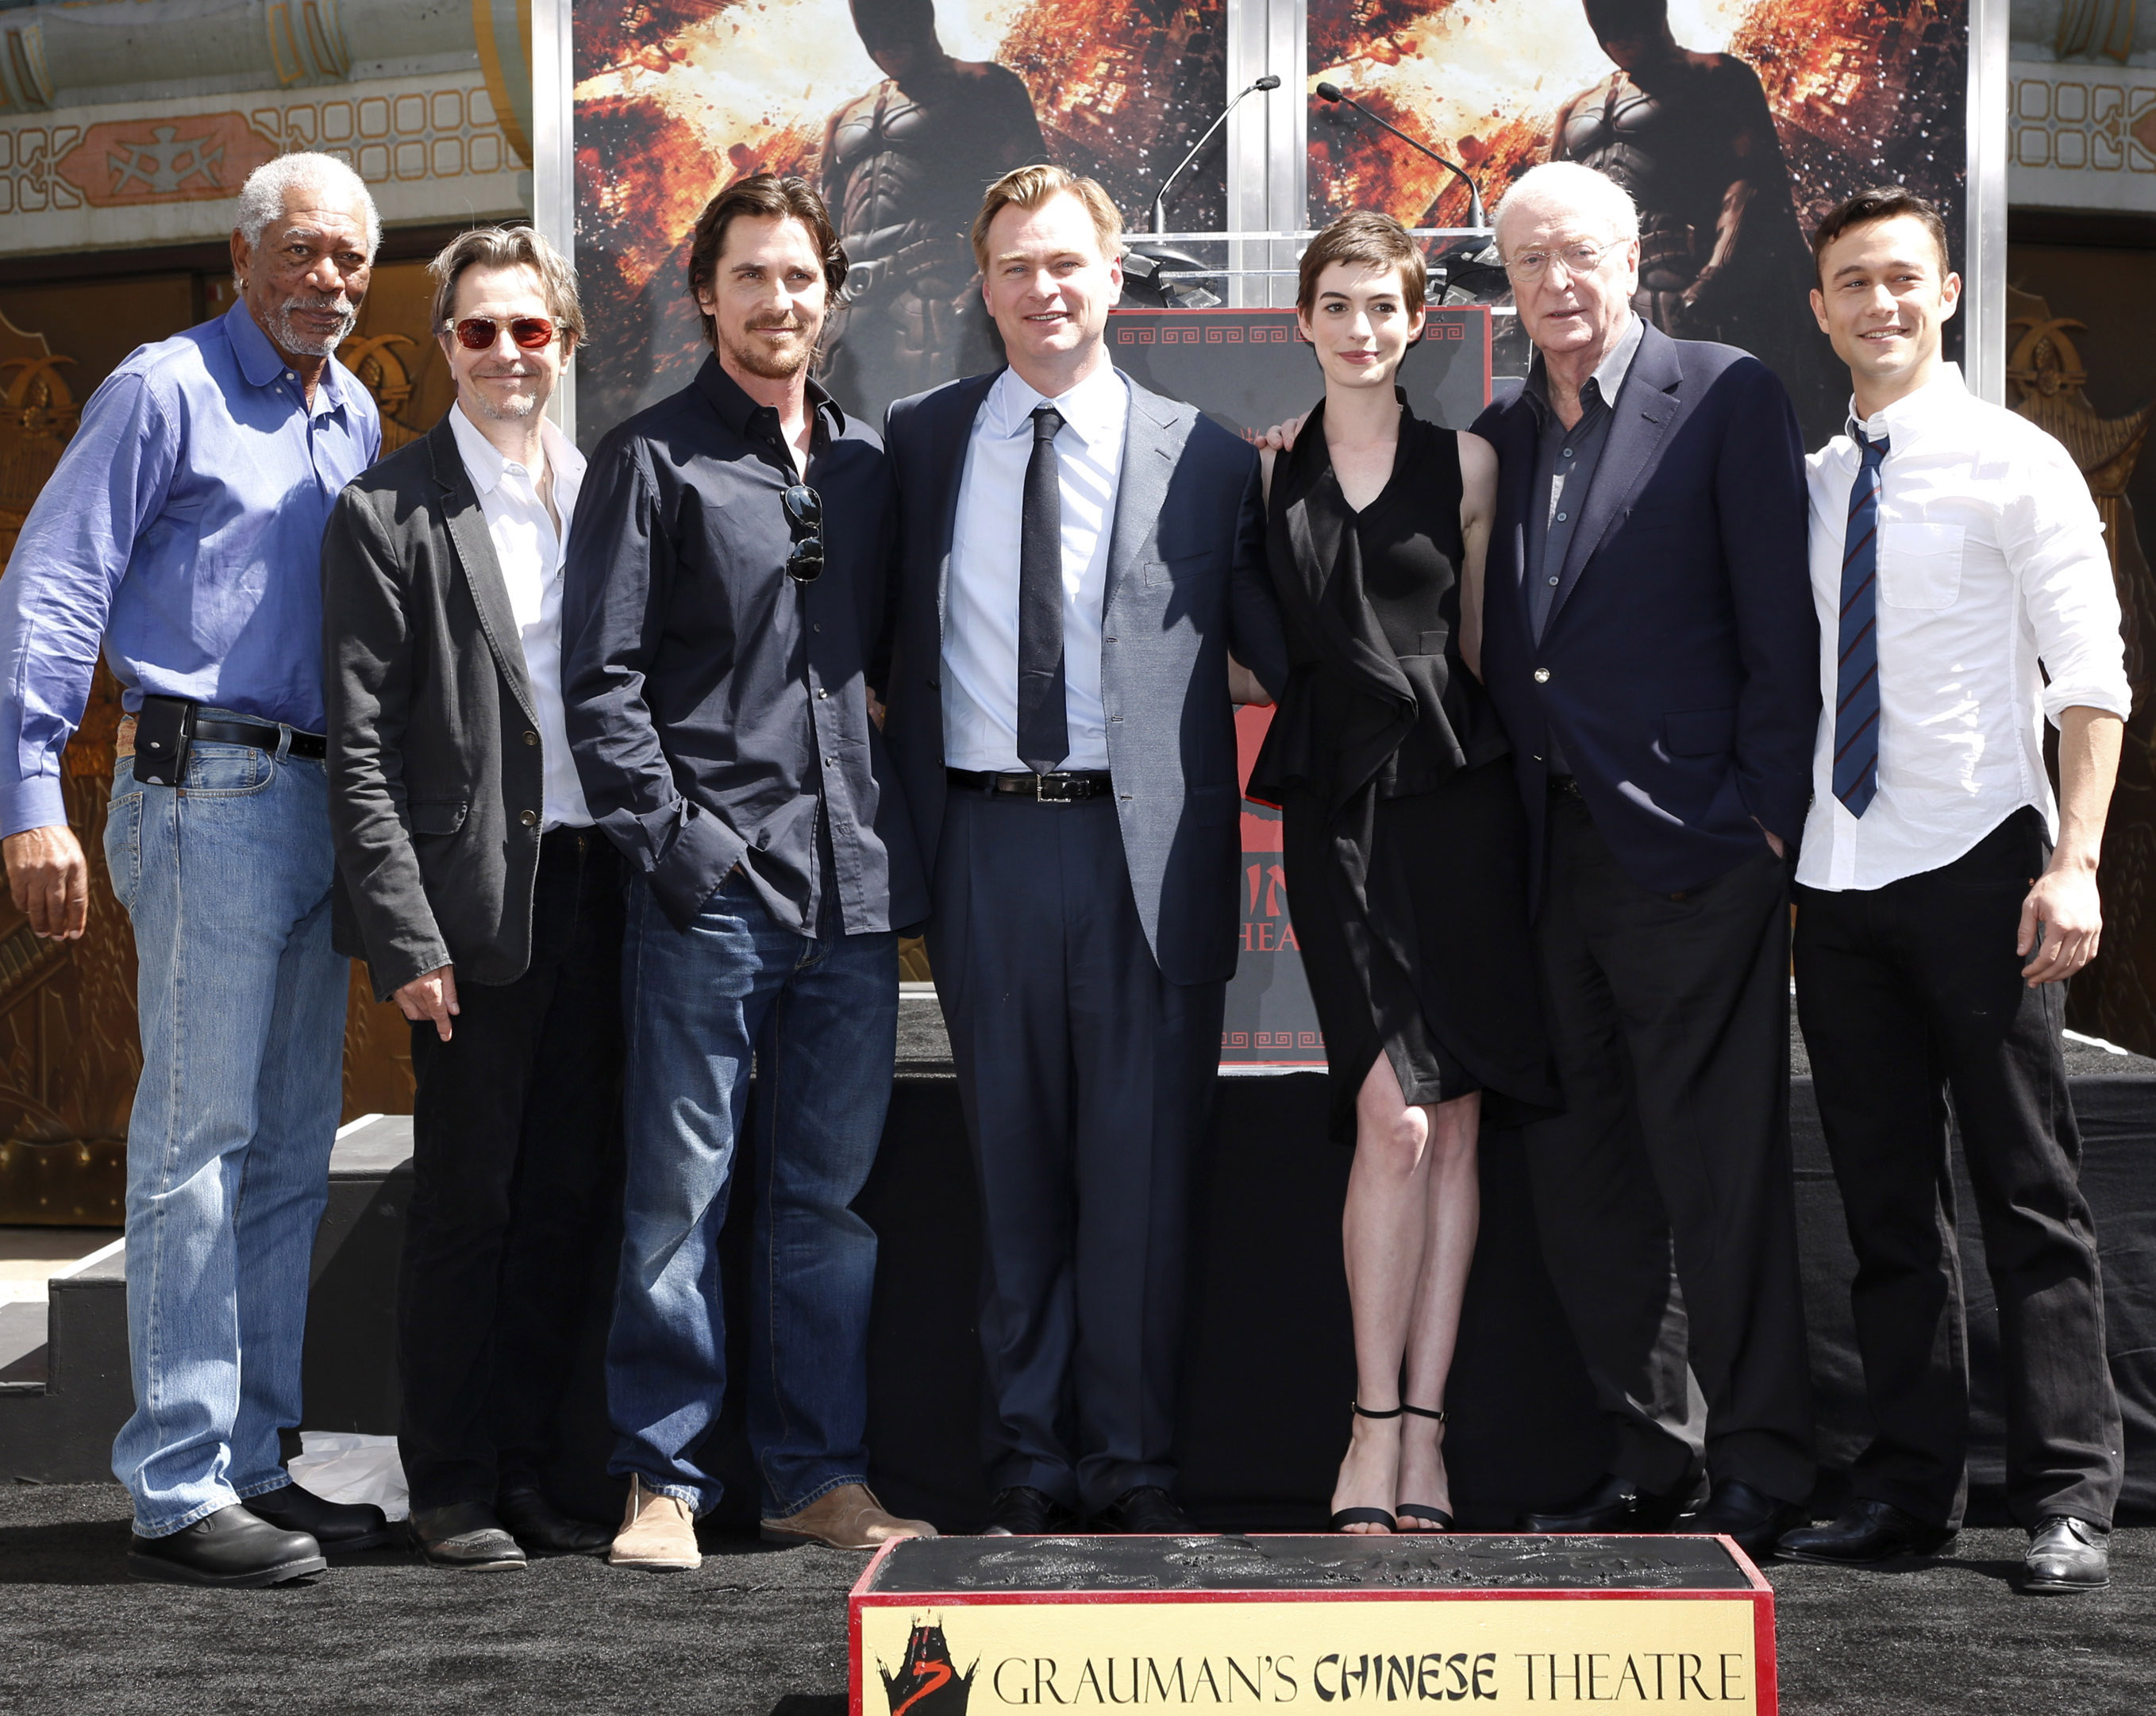 """L-r: From of Warner Bros. Pictures' and Legendary Pictures' """"THE DARK KNIGHT RISES,"""" MORGAN FREEMAN, GARY OLDMAN, CHRISTIAN BALE, CHRISTOPHER NOLAN, ANNE HATHAWAY, MICHAEL CAINE and JOSEPH GORDON-LEVITT at the ceremony honoring director/writer/producer CHRISTOPHER NOLAN, whose hand and footprints were placed in the forecourt of Grauman's Chinese Theatre in Hollywood. """"THE DARK KNIGHT RISES"""" is a Warner Bros. Pictures release."""